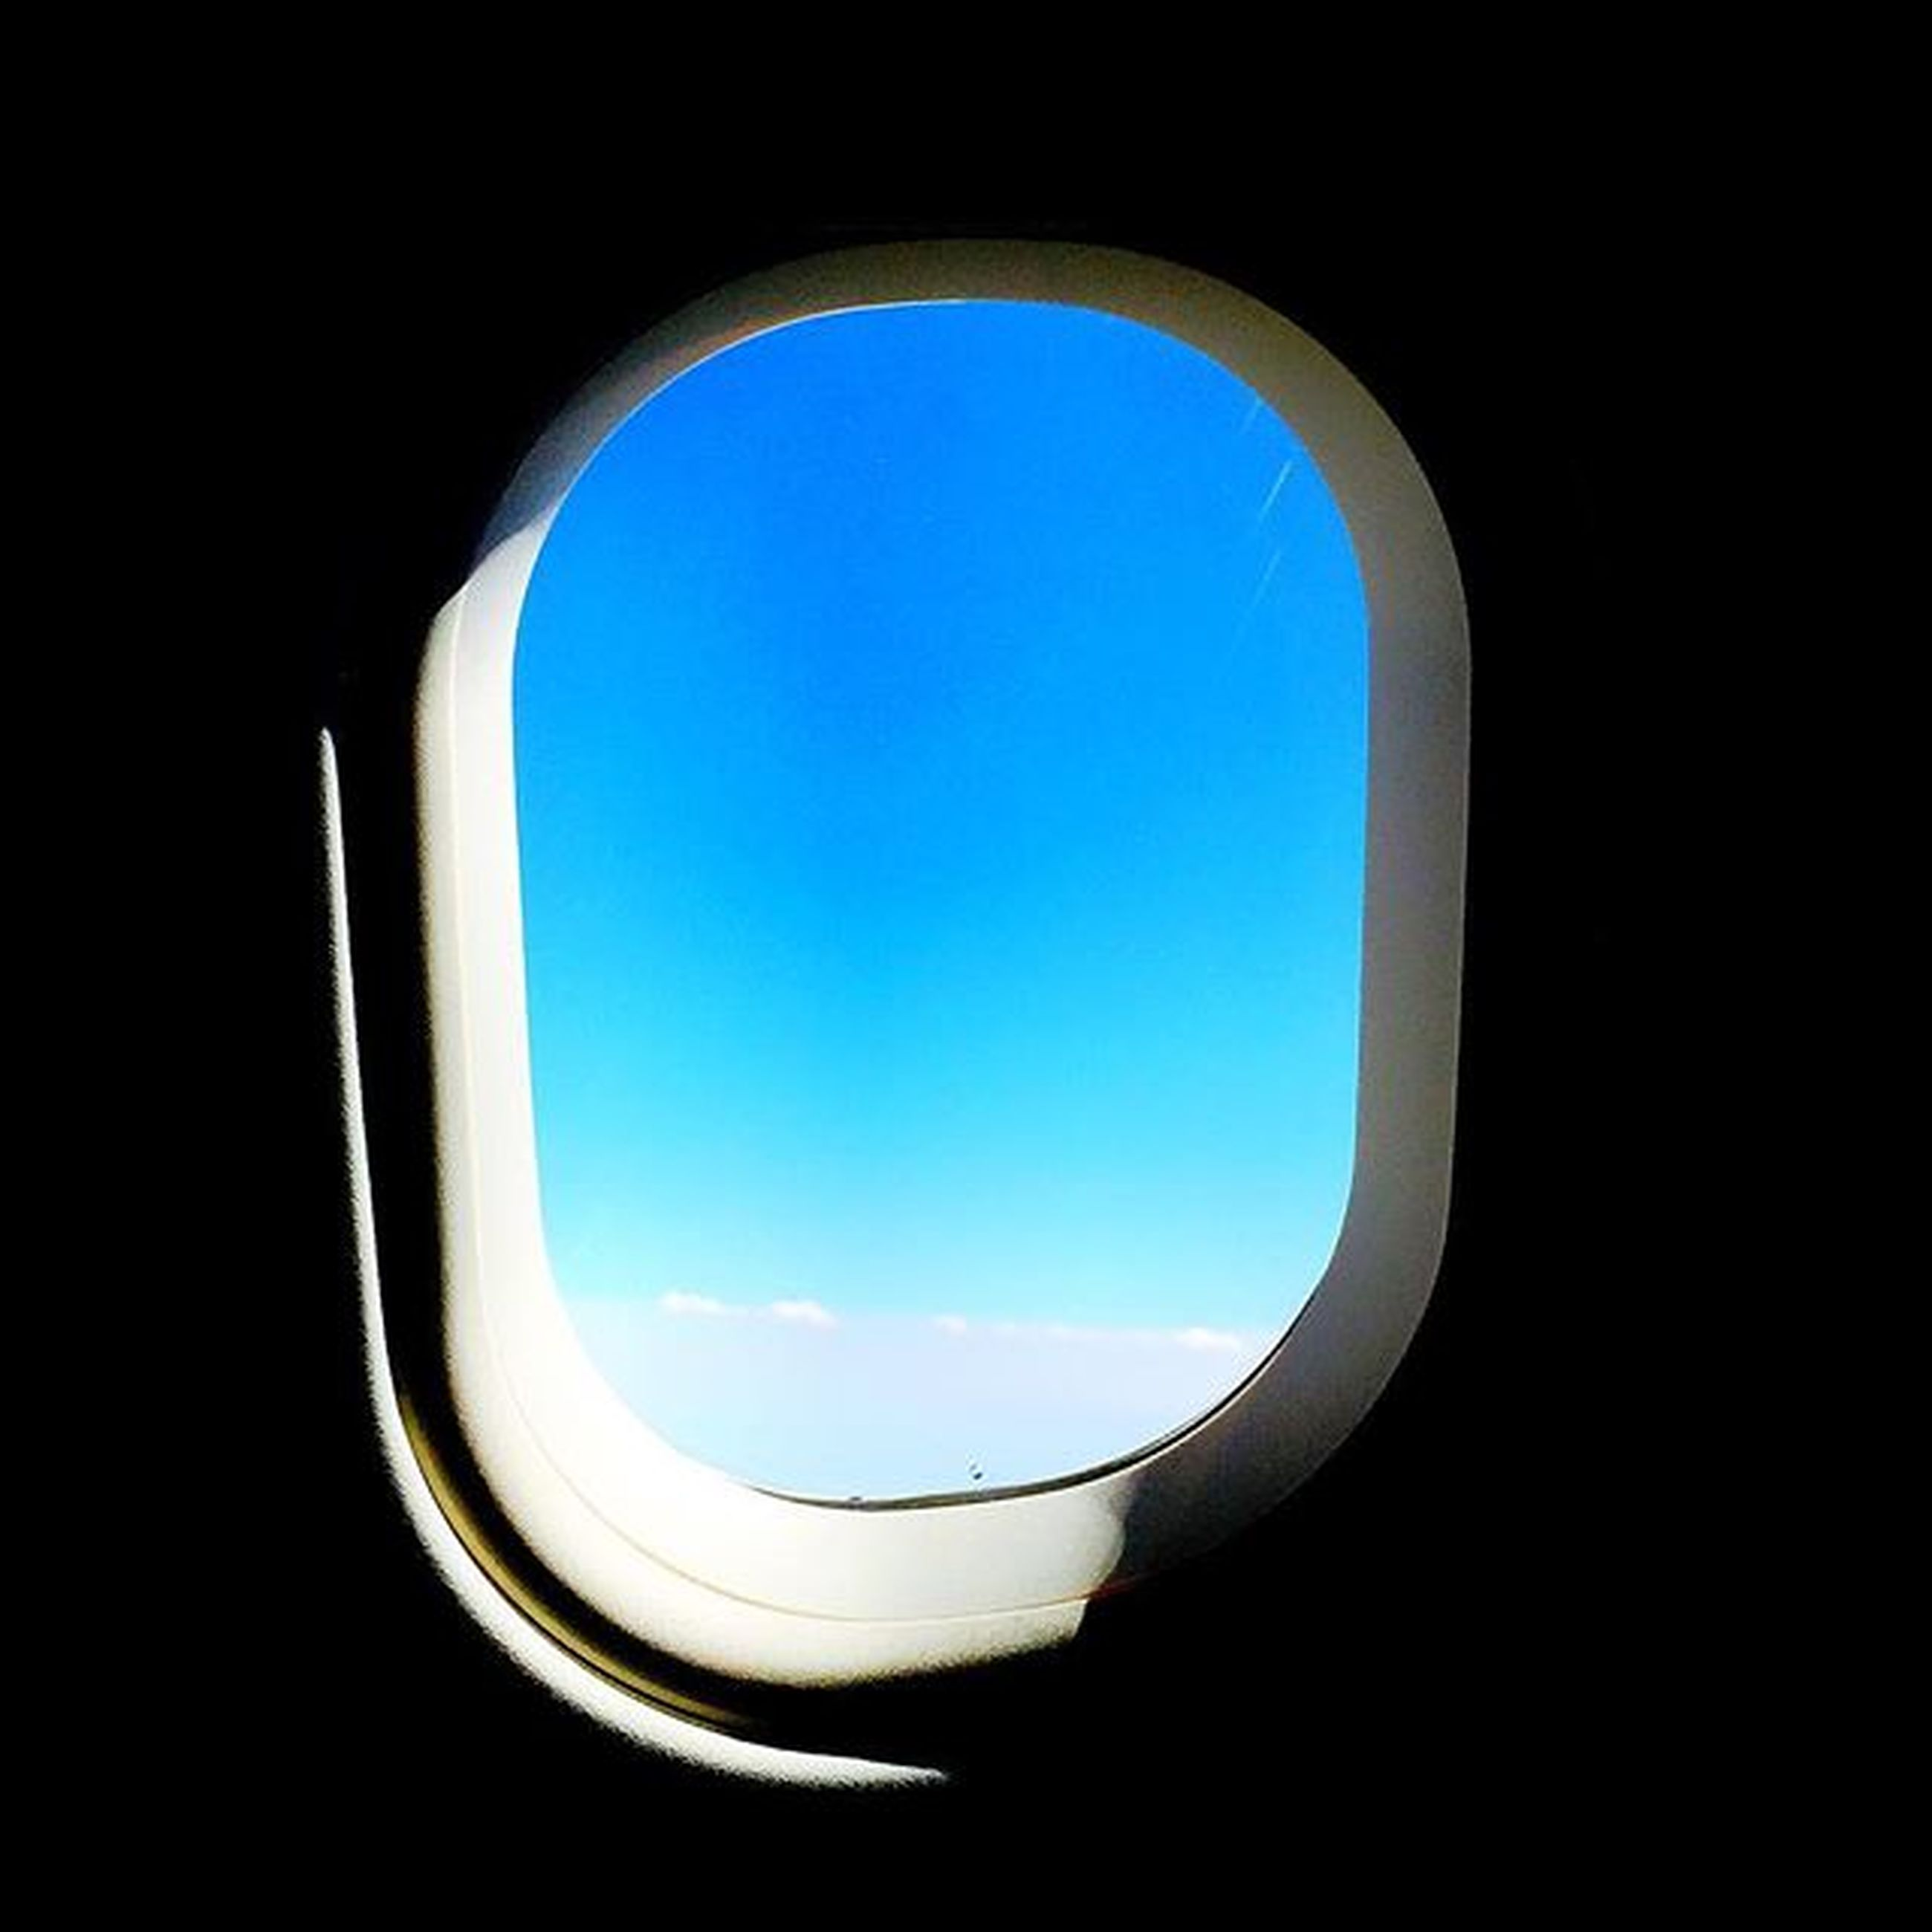 window, indoors, copy space, clear sky, airplane, circle, blue, air vehicle, sky, flying, transportation, transparent, glass - material, geometric shape, no people, nature, vehicle interior, mid-air, day, shape